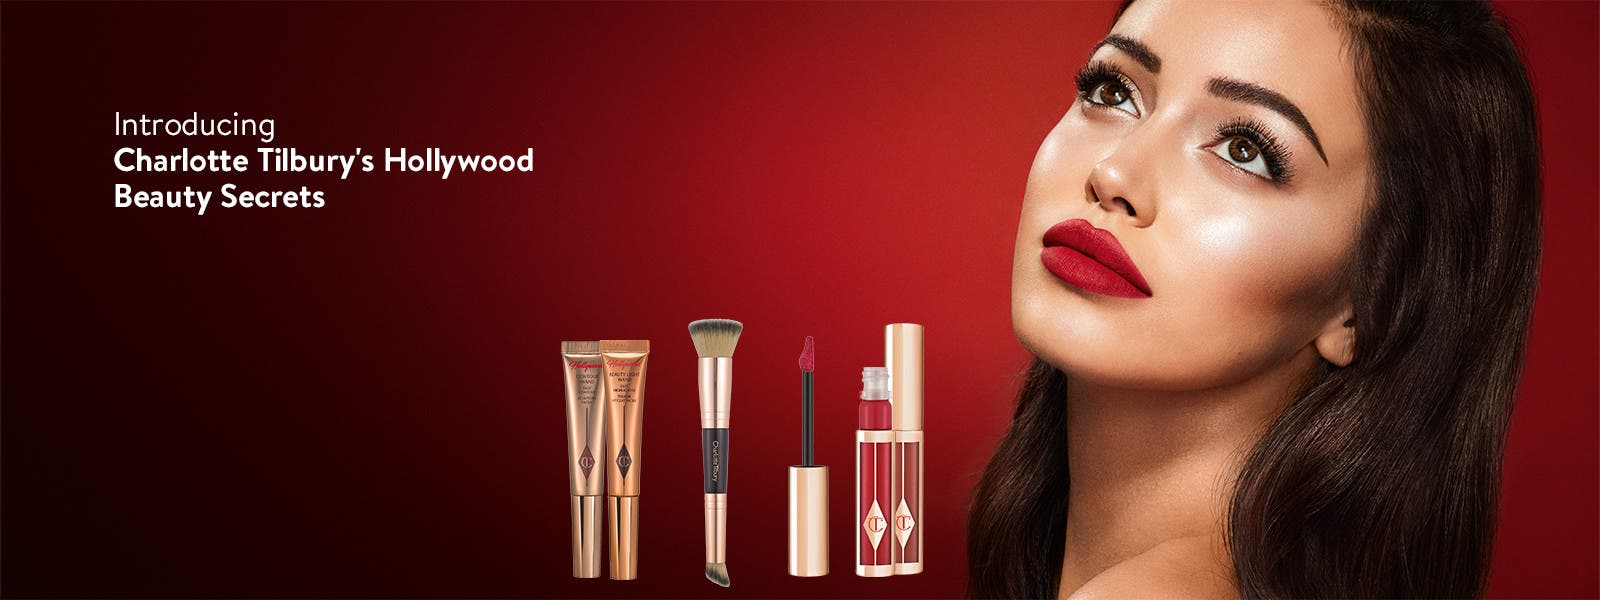 Introducing Charlotte Tilbury's Hollywood Beauty Secrets collection.